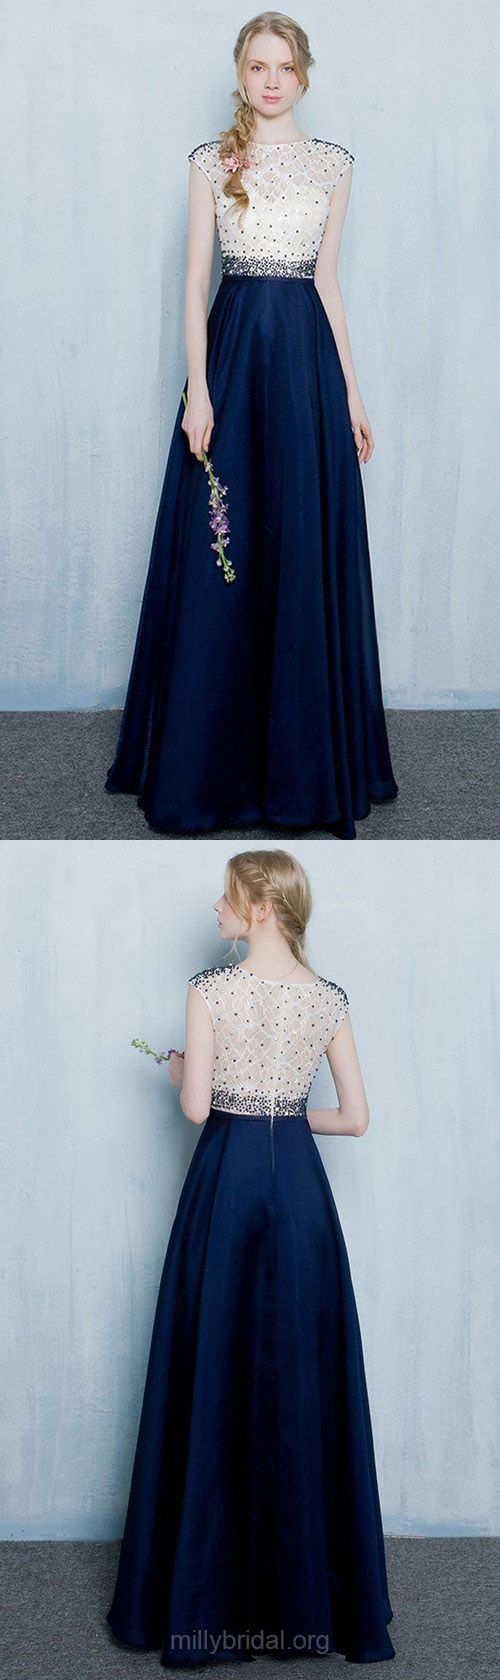 Royal blue prom dresses lace party dresses long aline formal